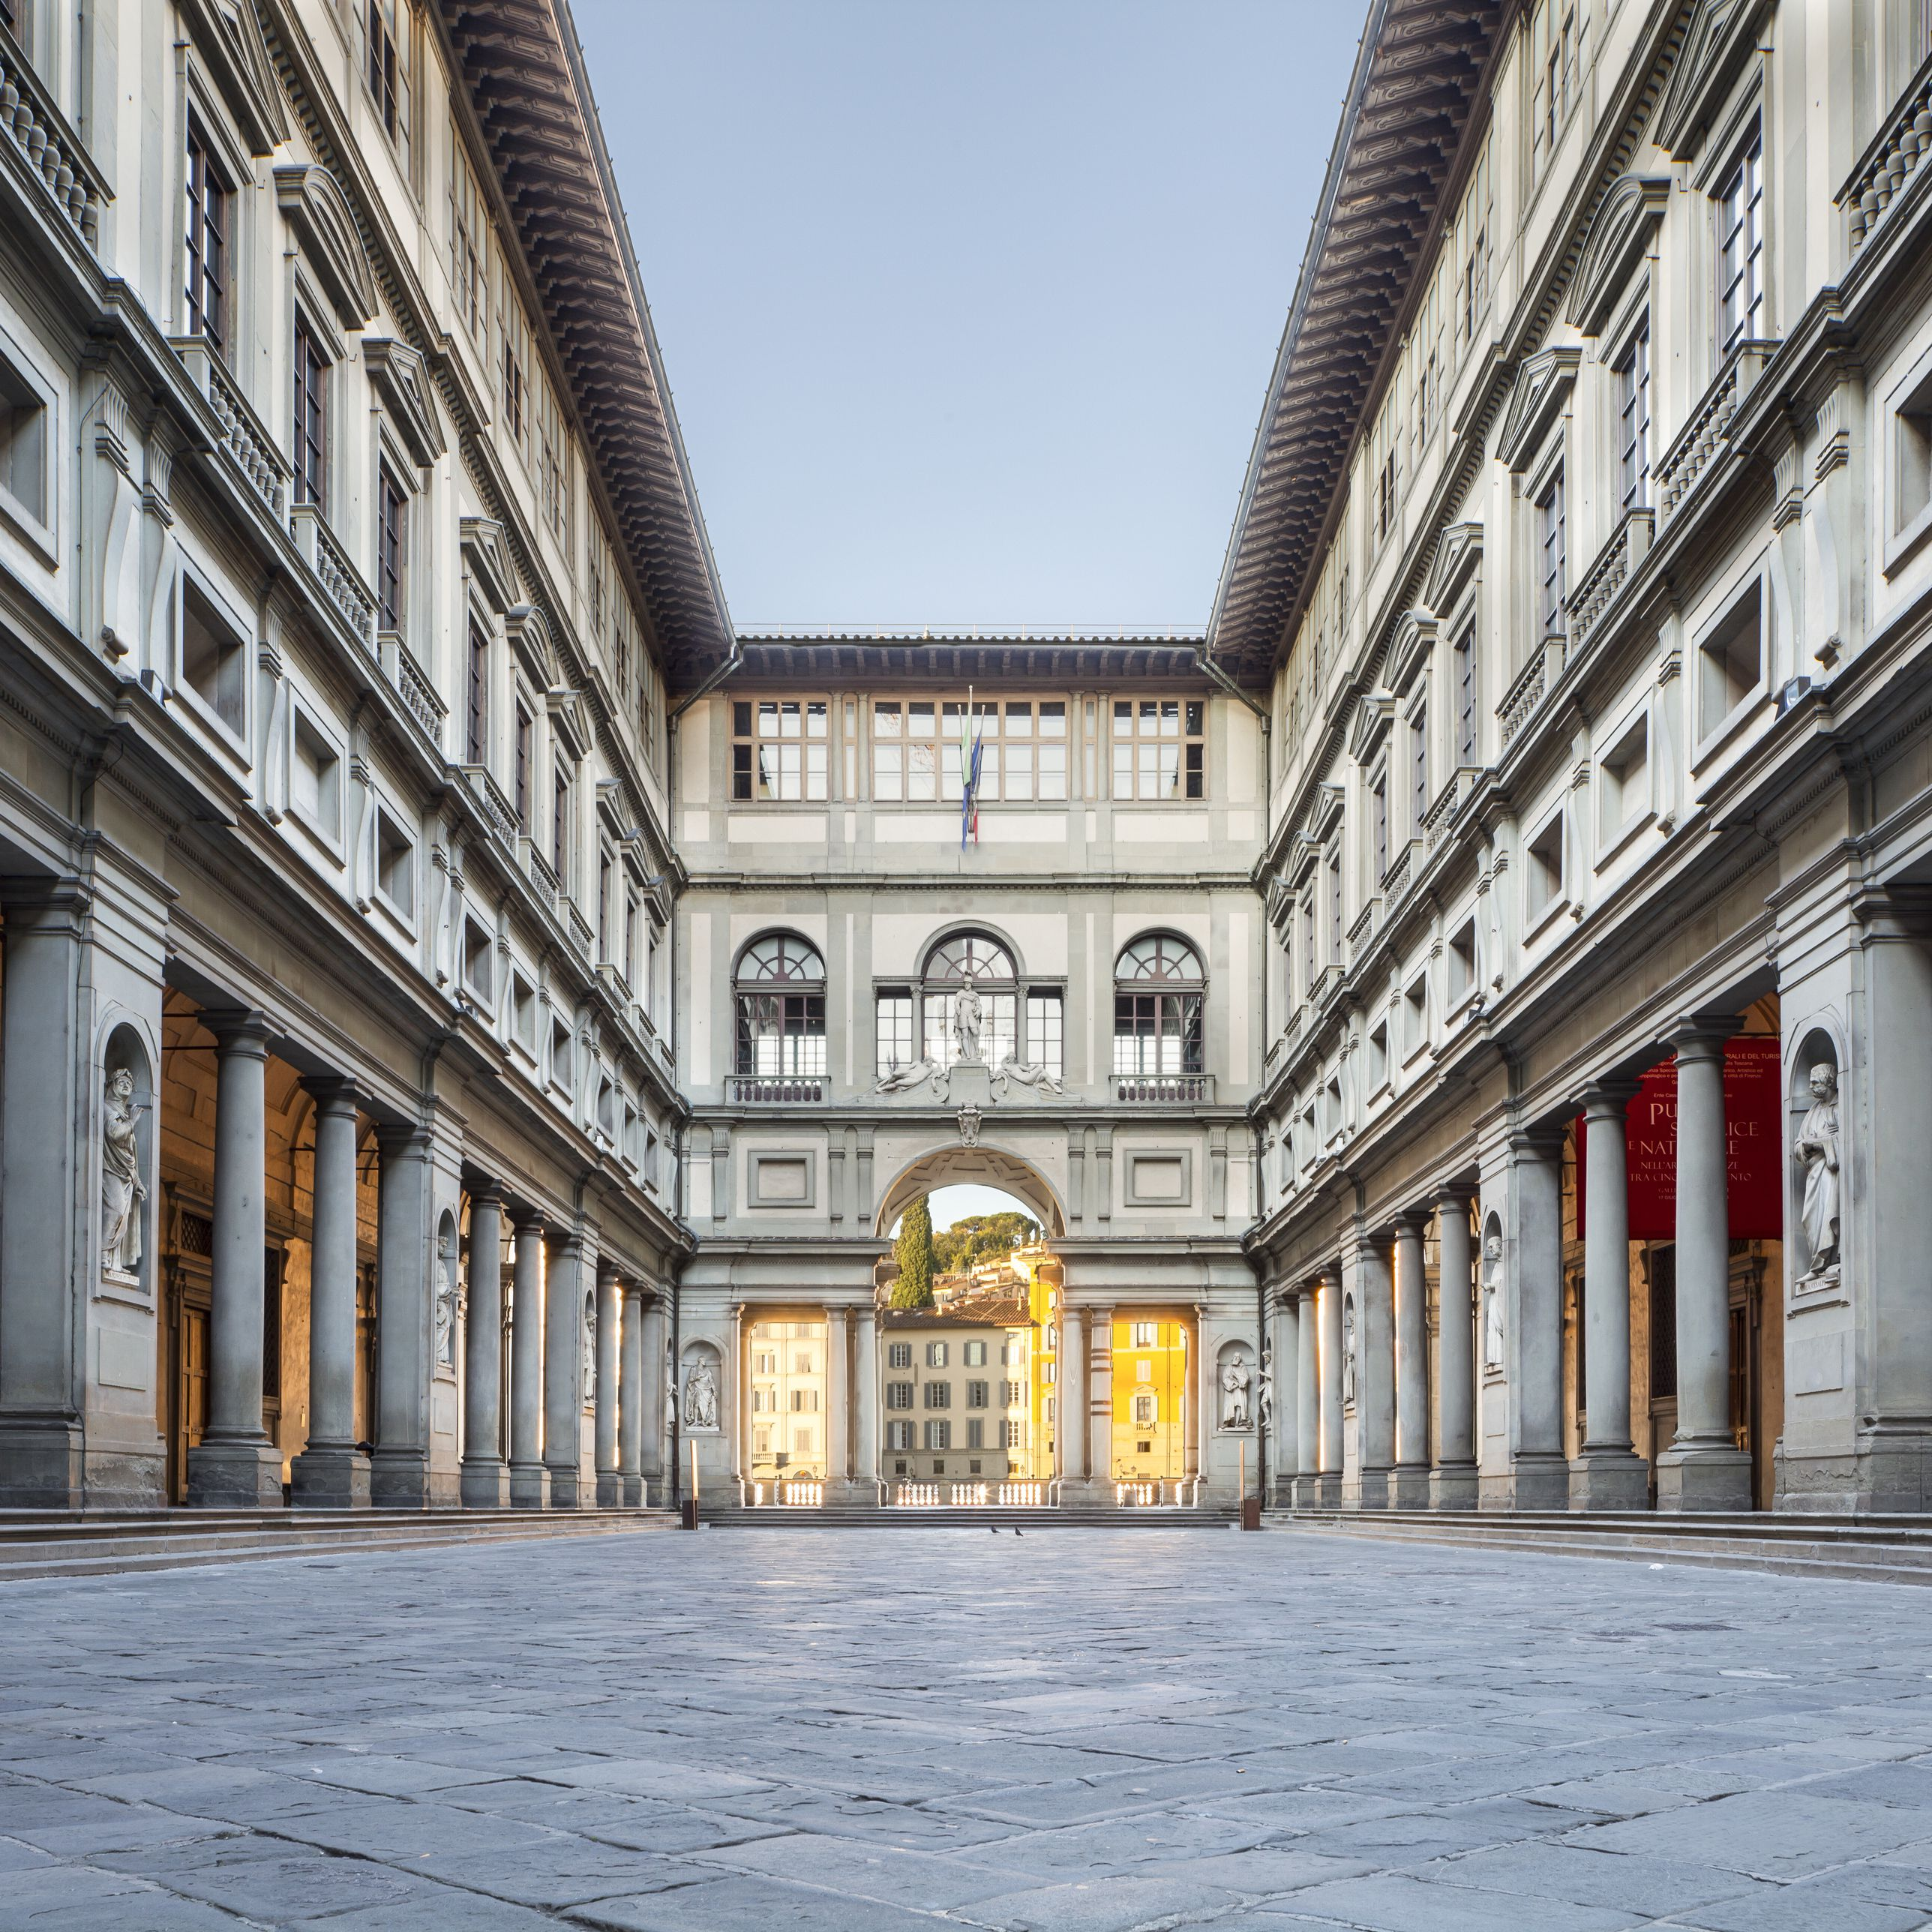 Guide to the Uffizi Gallery in Florence